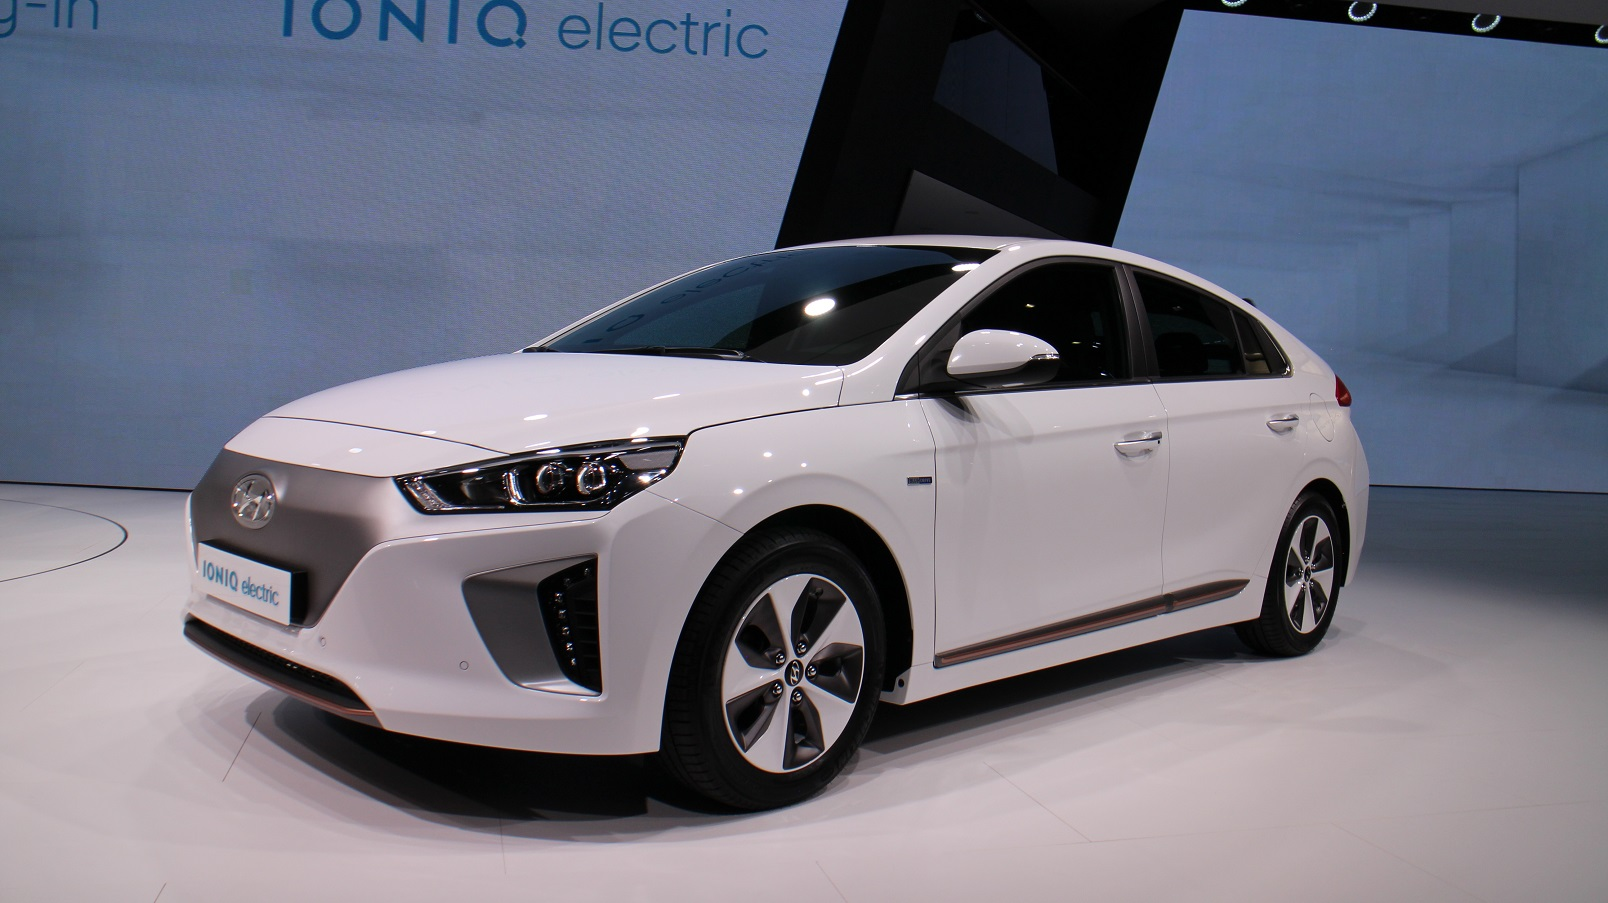 Hyundai Ioniq Electric Car Offered On Ioniq Unlimited